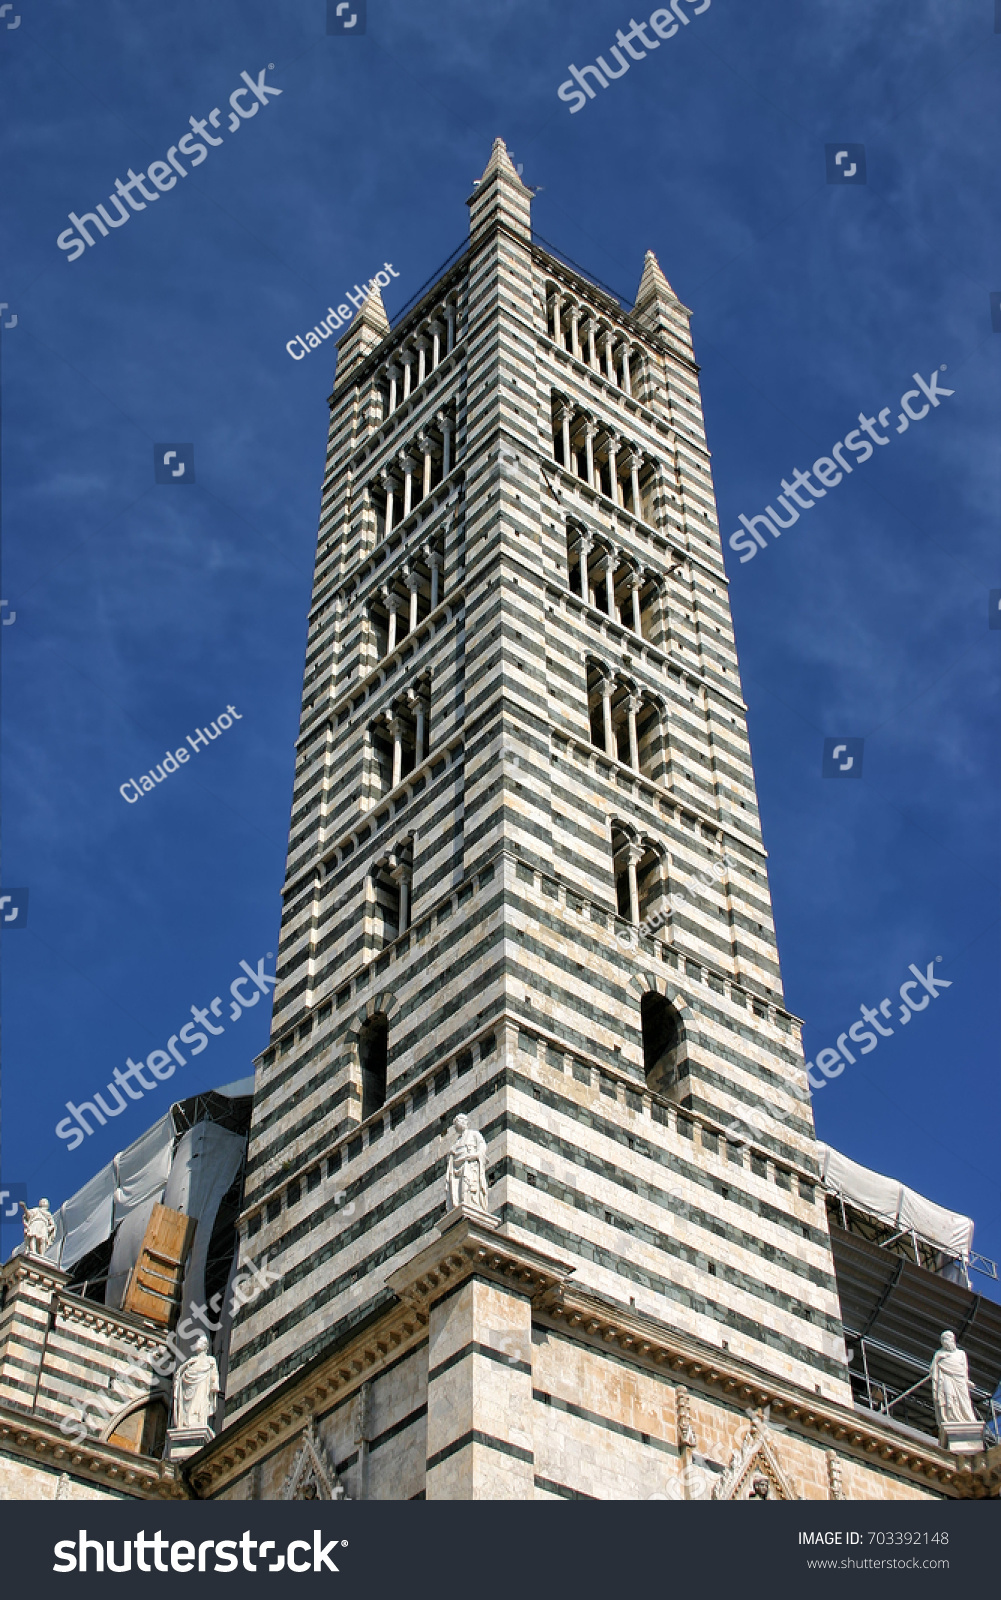 Bell tower of the Siena Cathedral which is a medieval church dedicated to the Assumption of the Virgin Mary.